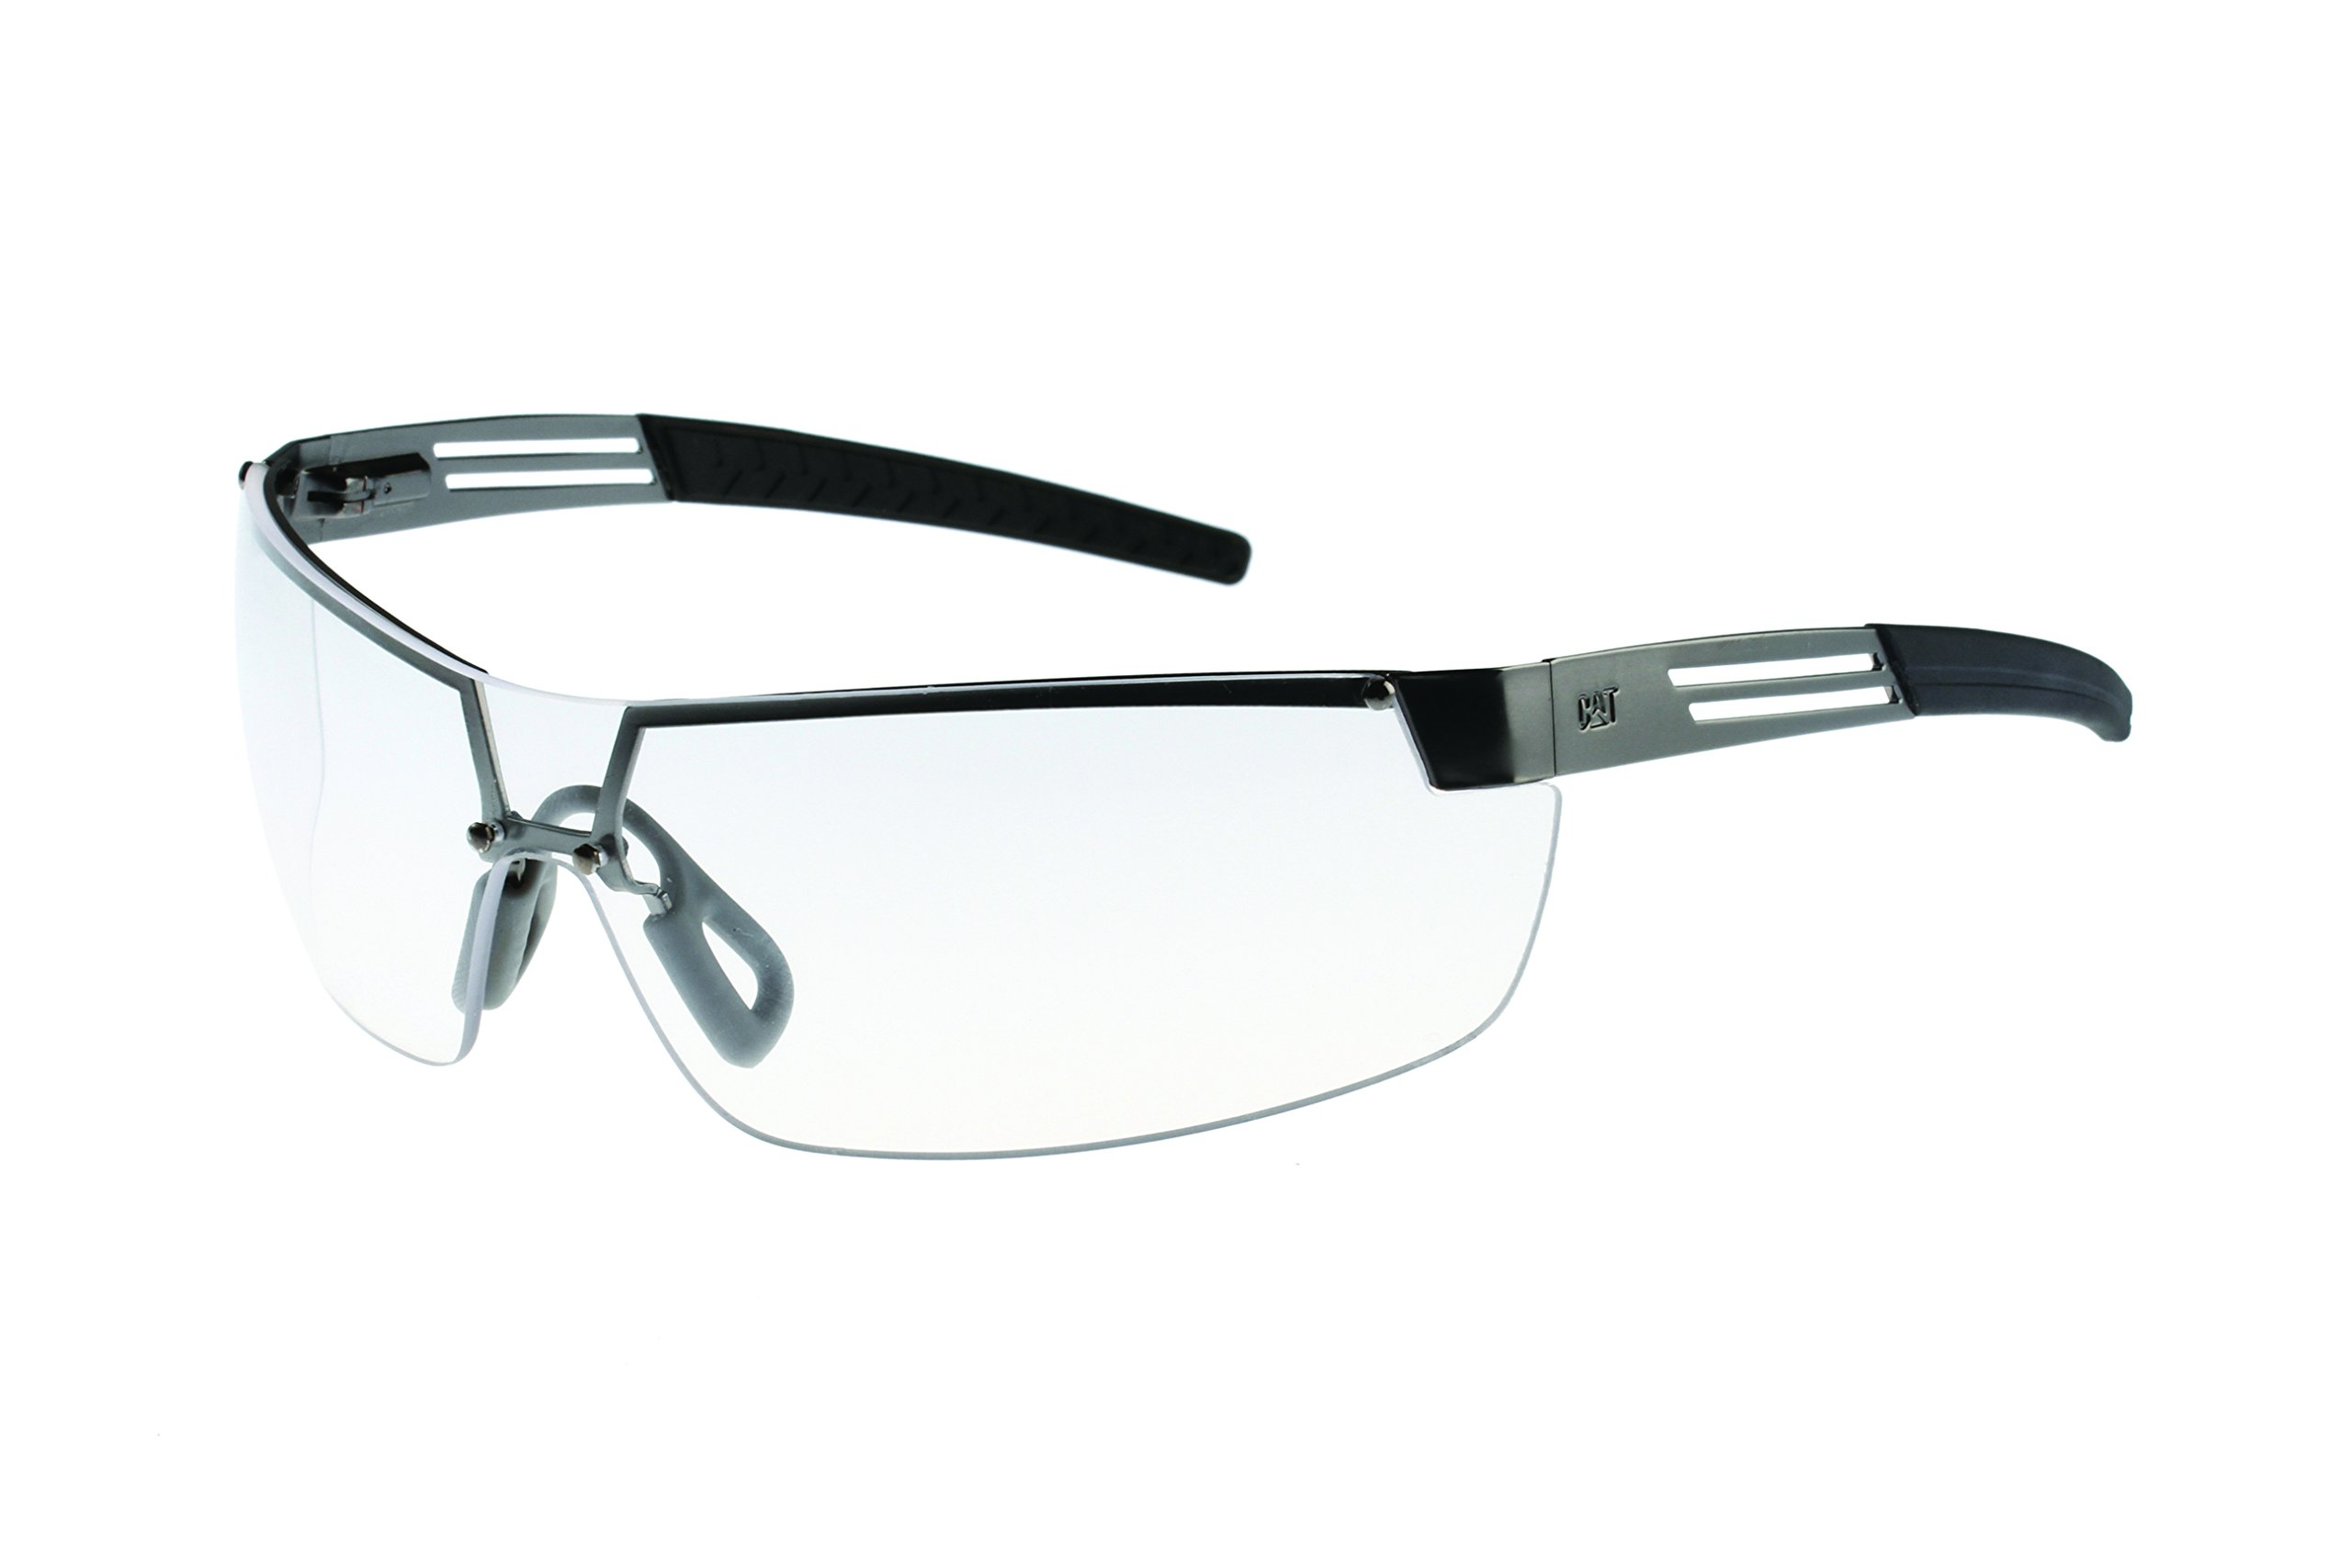 Caterpillar CSA-GUARD-100 Filter Category 2-1.3 Clear Lens Safety Glasses, Small